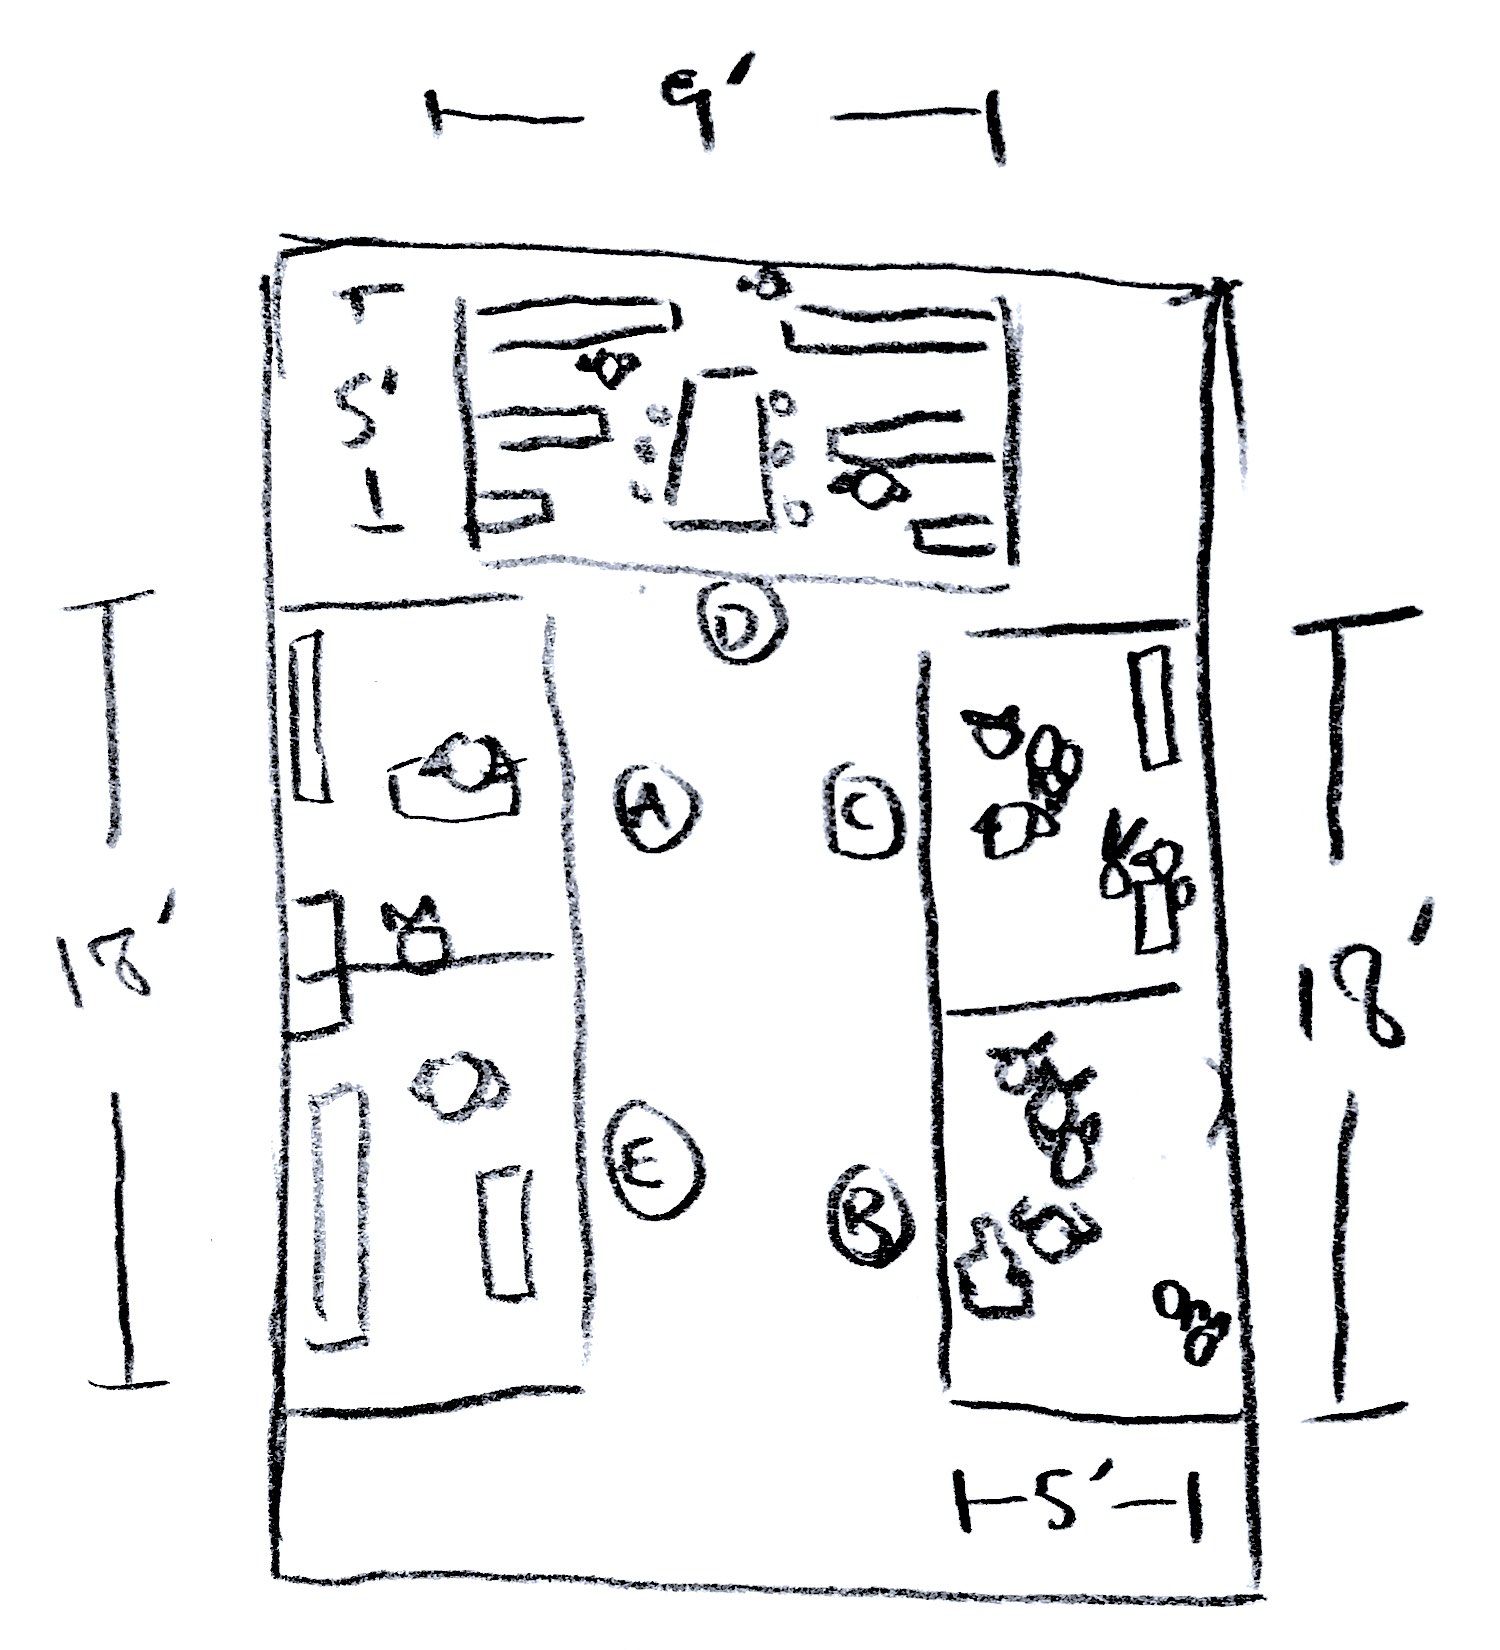 An overhead sketch of the show